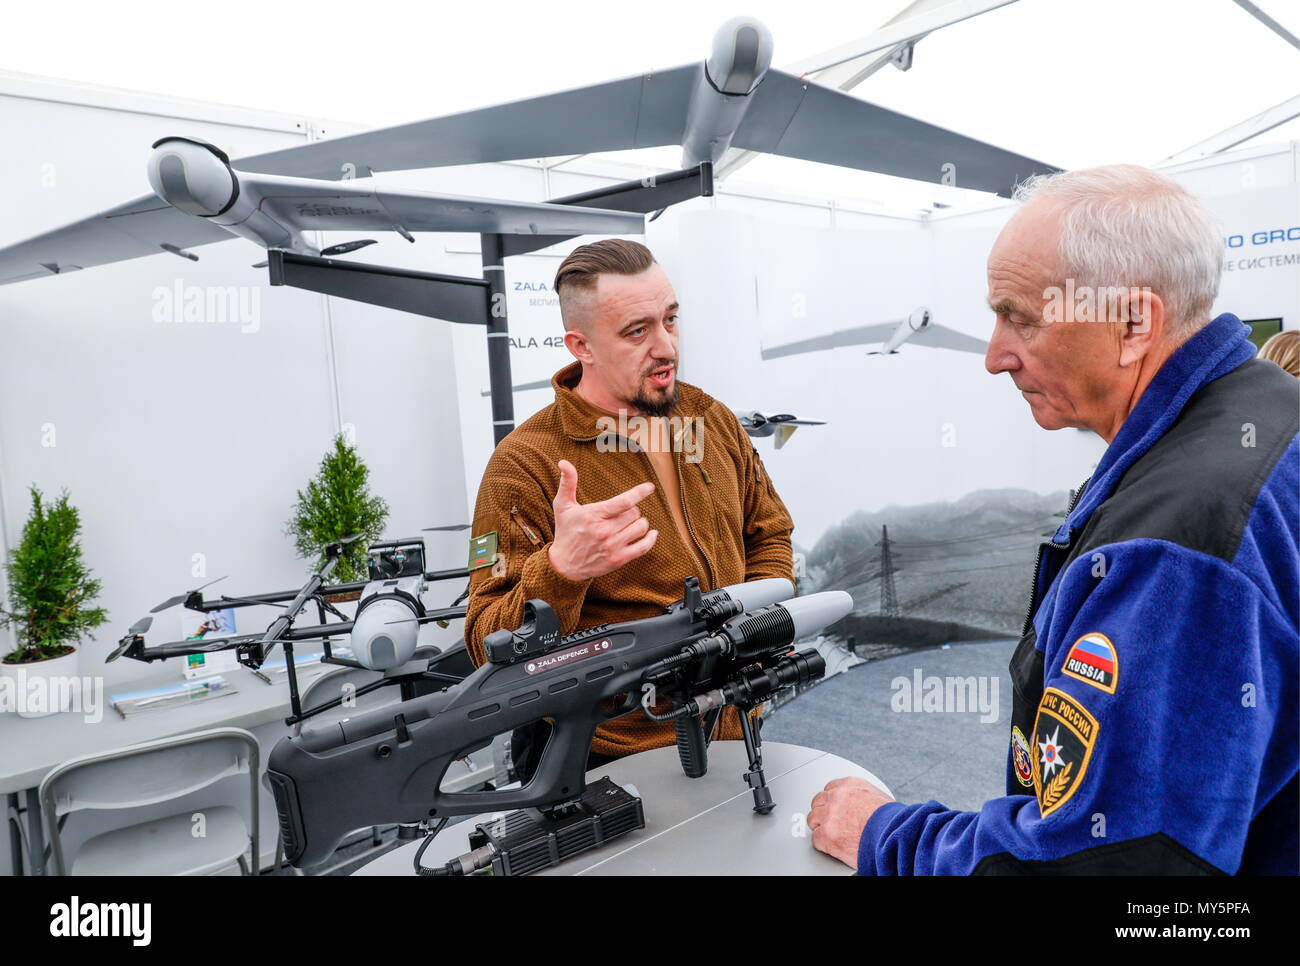 MOSCOW REGION, RUSSIA - JUNE 6, 2018: REX-1, an anti-drone rifle developed by ZALA Aero, a Kalashnikov Concern subsidiary, on display at the 2018 Complex Safety, an international show and exhibition of safety and security equipment, in Noginsk, Moscow Region; the event was organised by the Russian Ministry of the Interior, and the Russian Ministry of Civil Defence, Emergencies, and Disaster Relief. Mikhail Japaridze/TASS - Stock Image